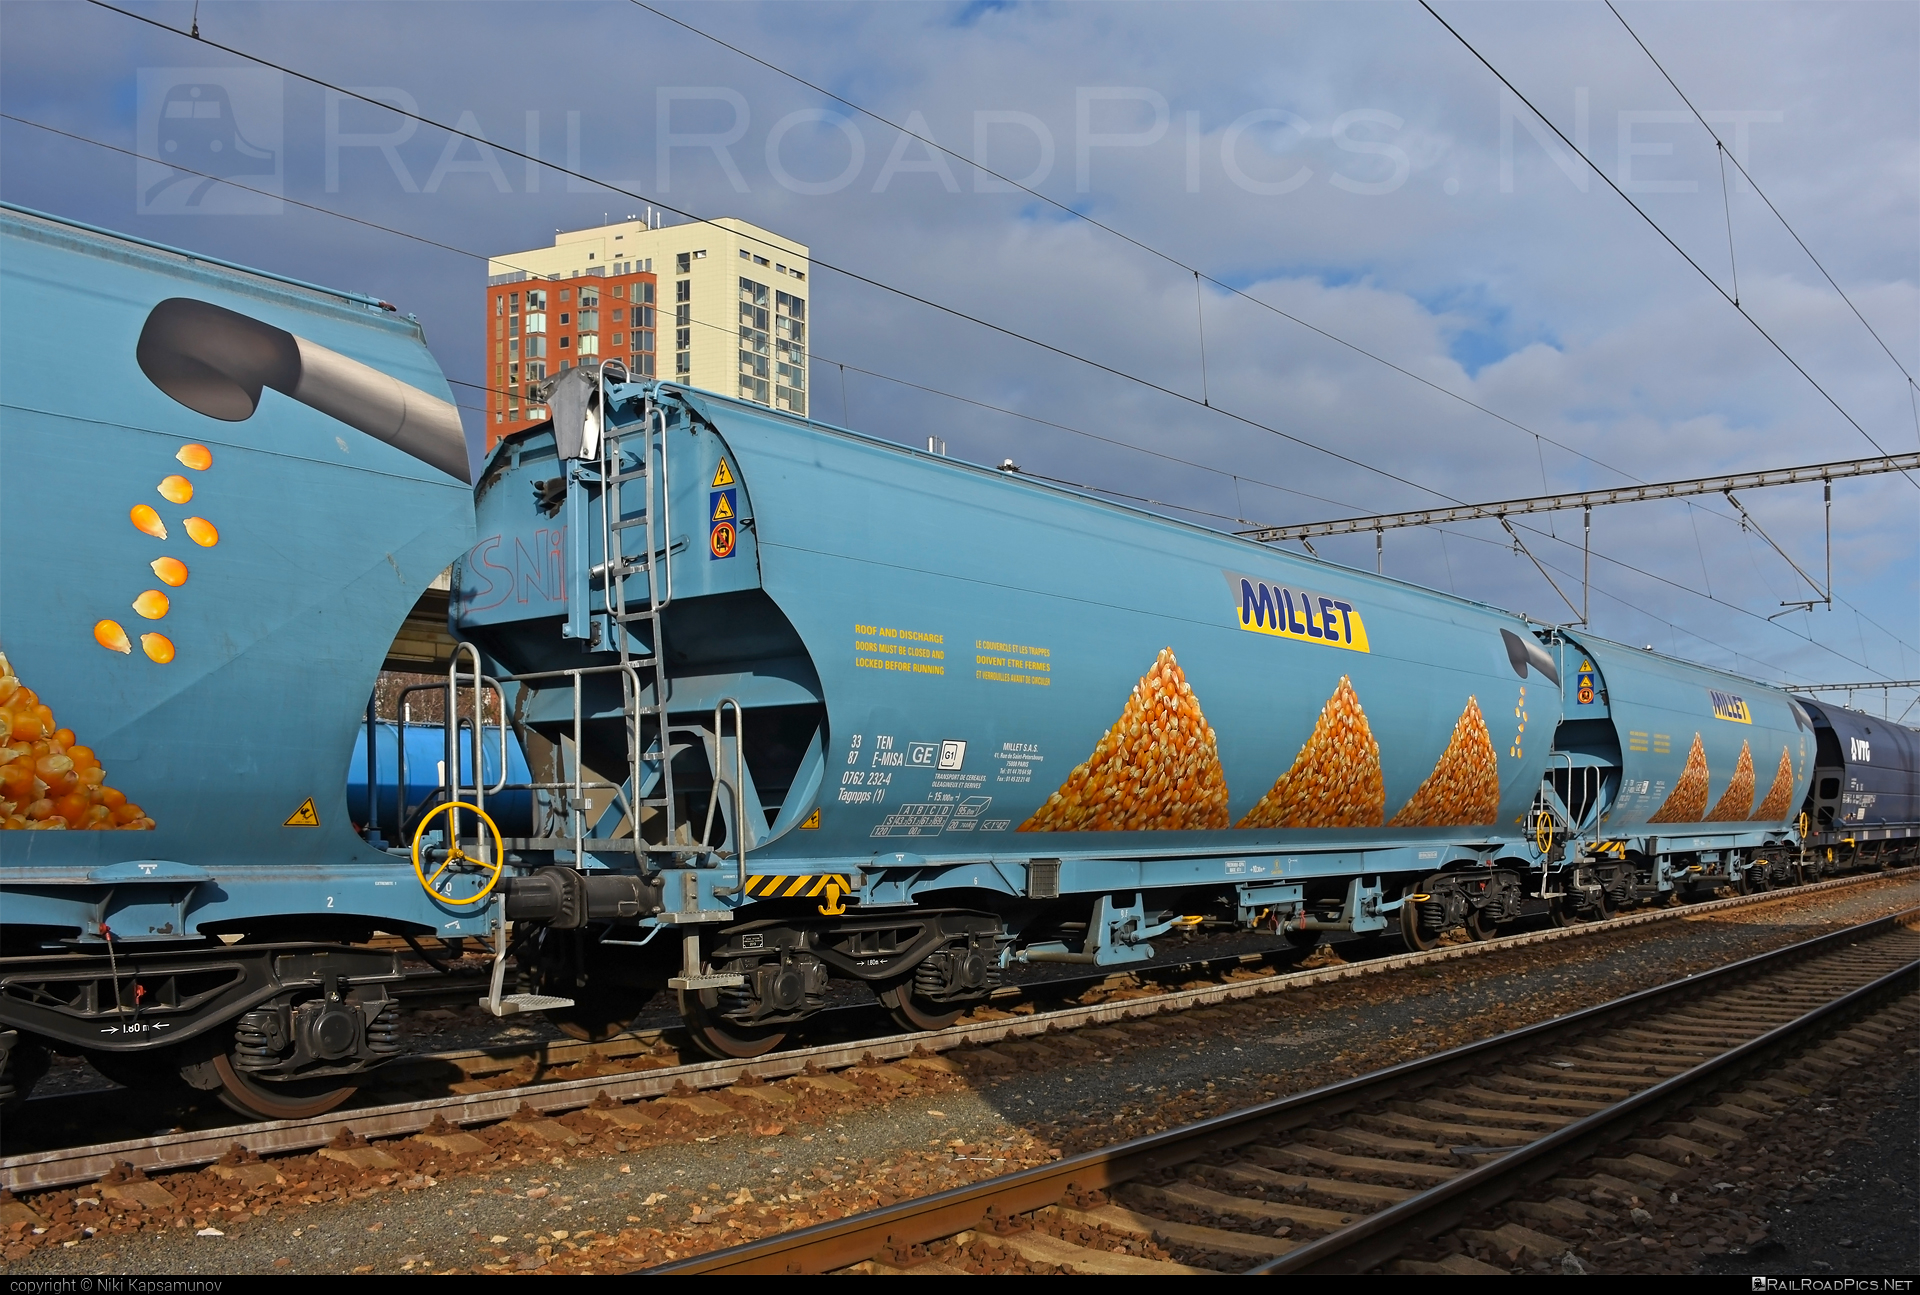 Class T - Tagnpps - 33 87 0762 232-4 F-MISA operated by Millet SAS #hopperwagon #millet #tagnpps